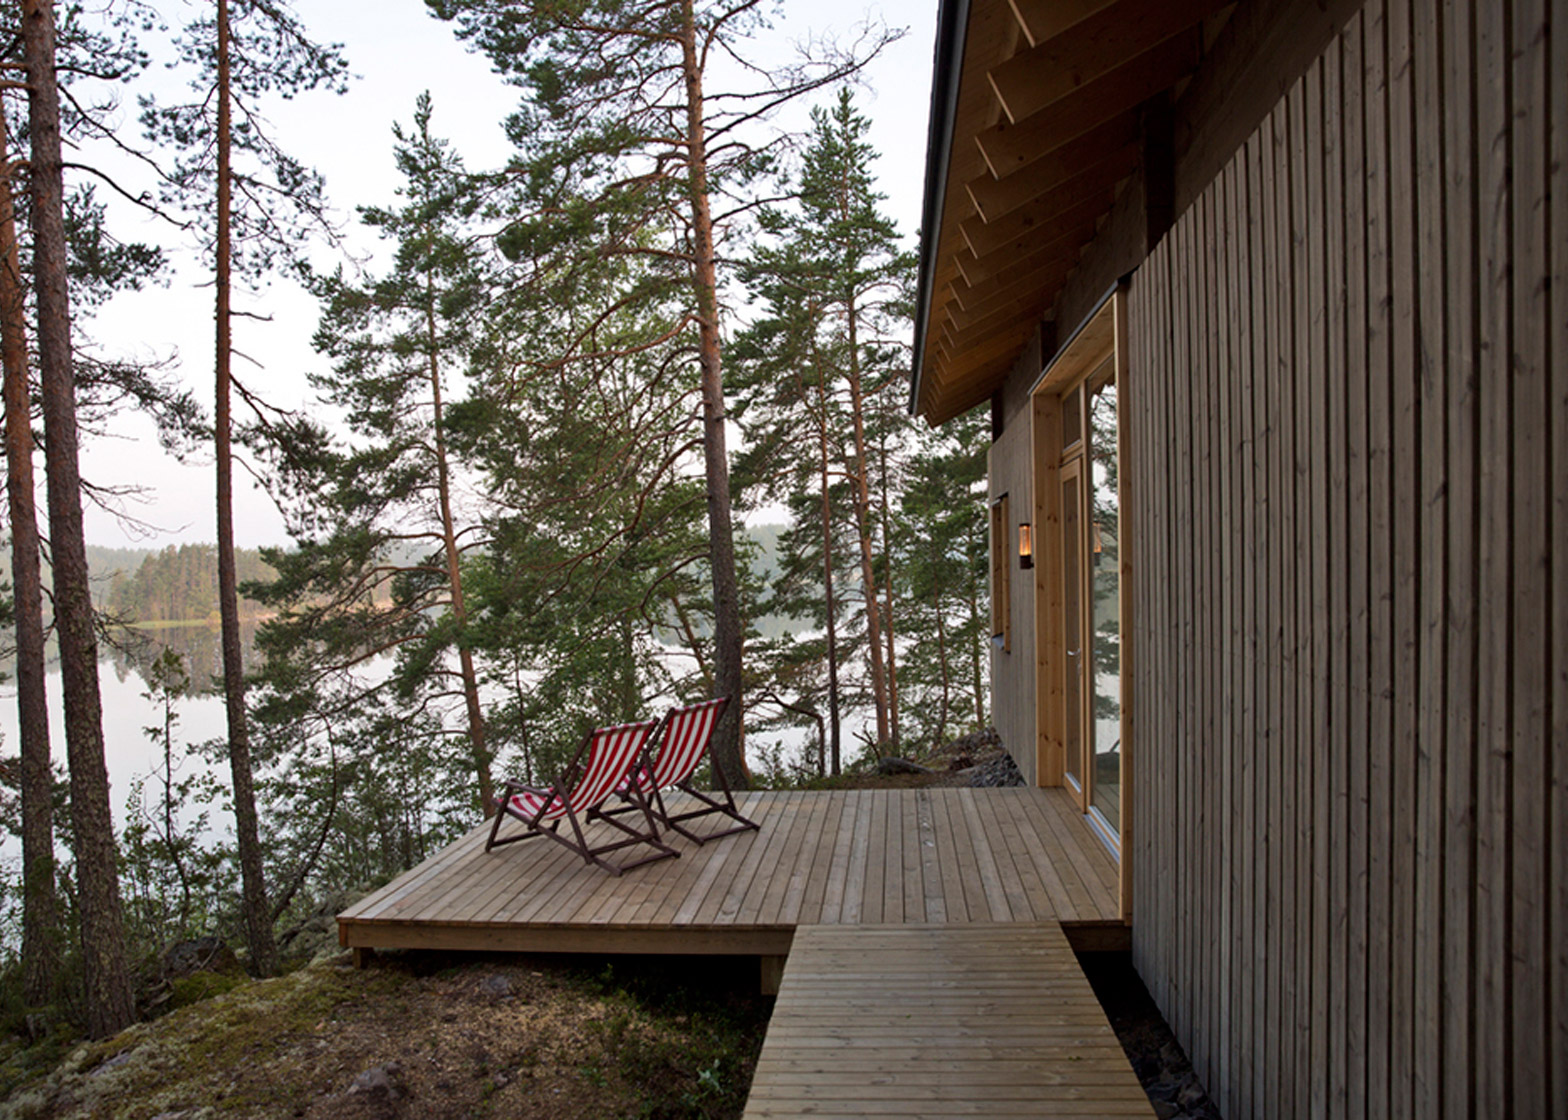 Lake cabin by Sini Kamppari features slatted timber siding and projecting terrace